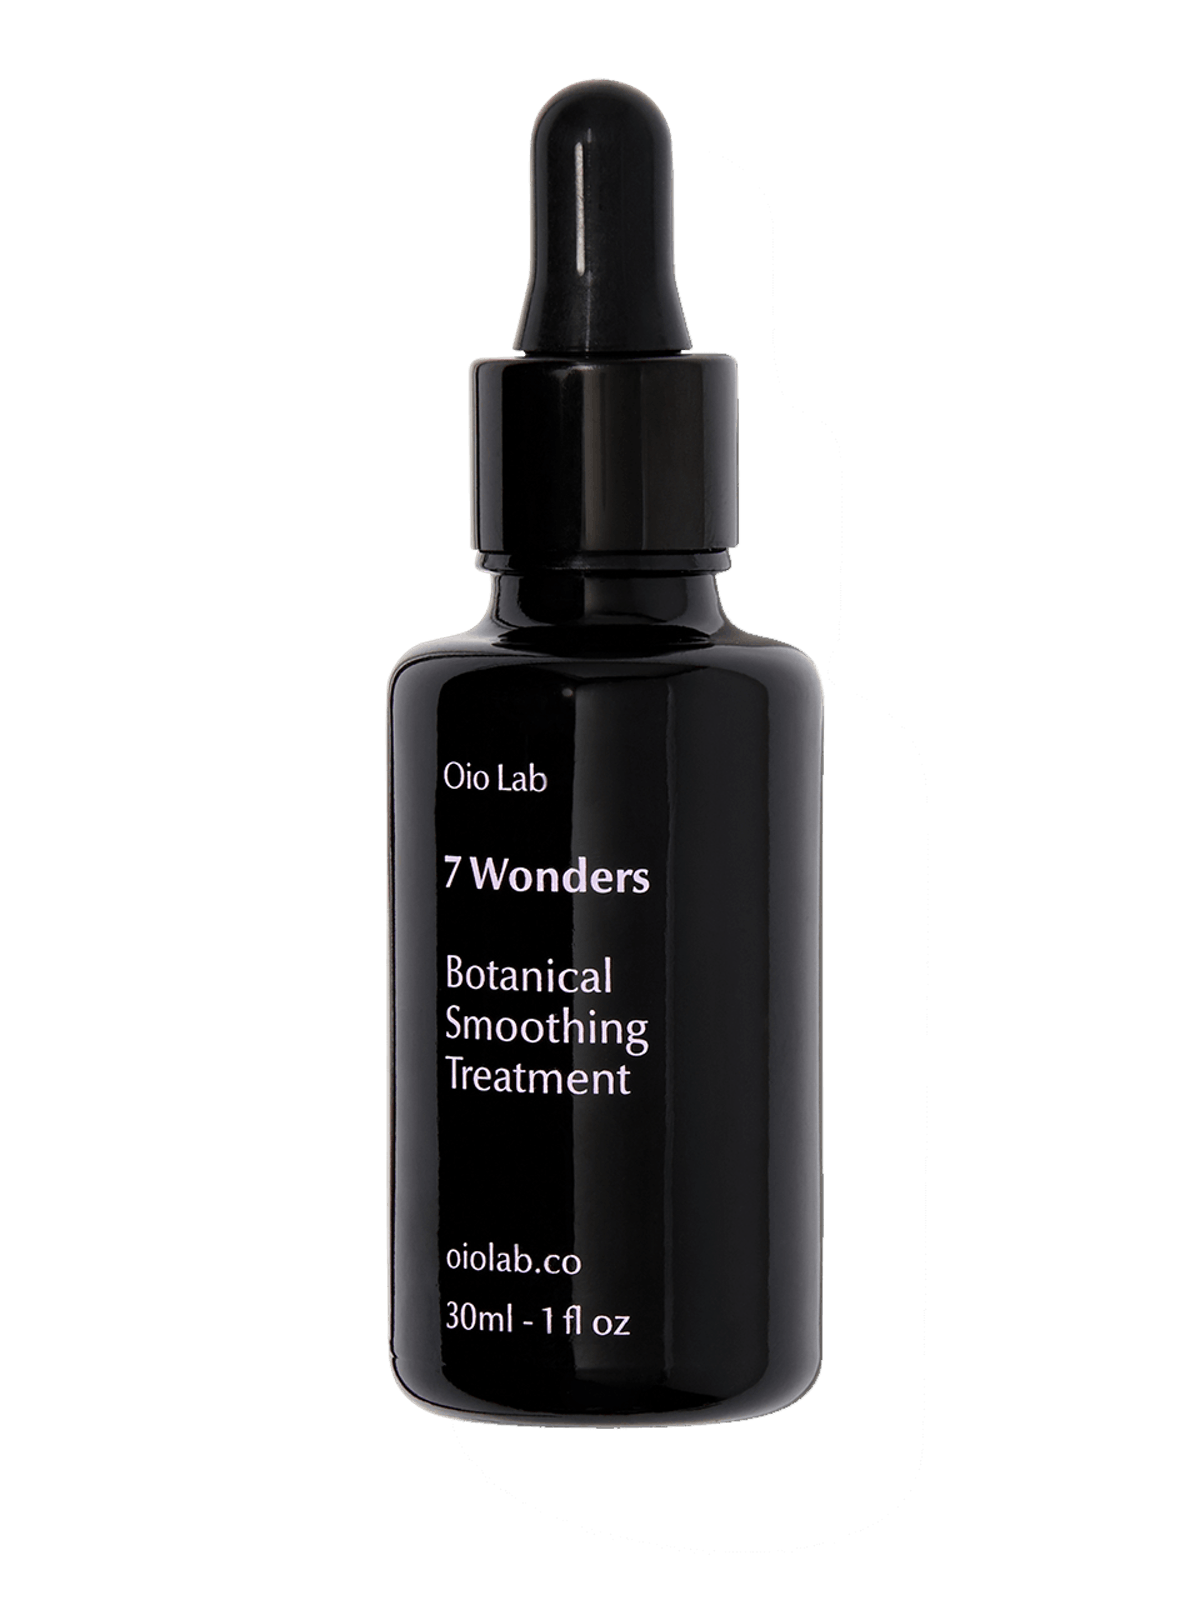 Oio Lab 7 Moments Botanical Smoothing Facial Treatment Oil